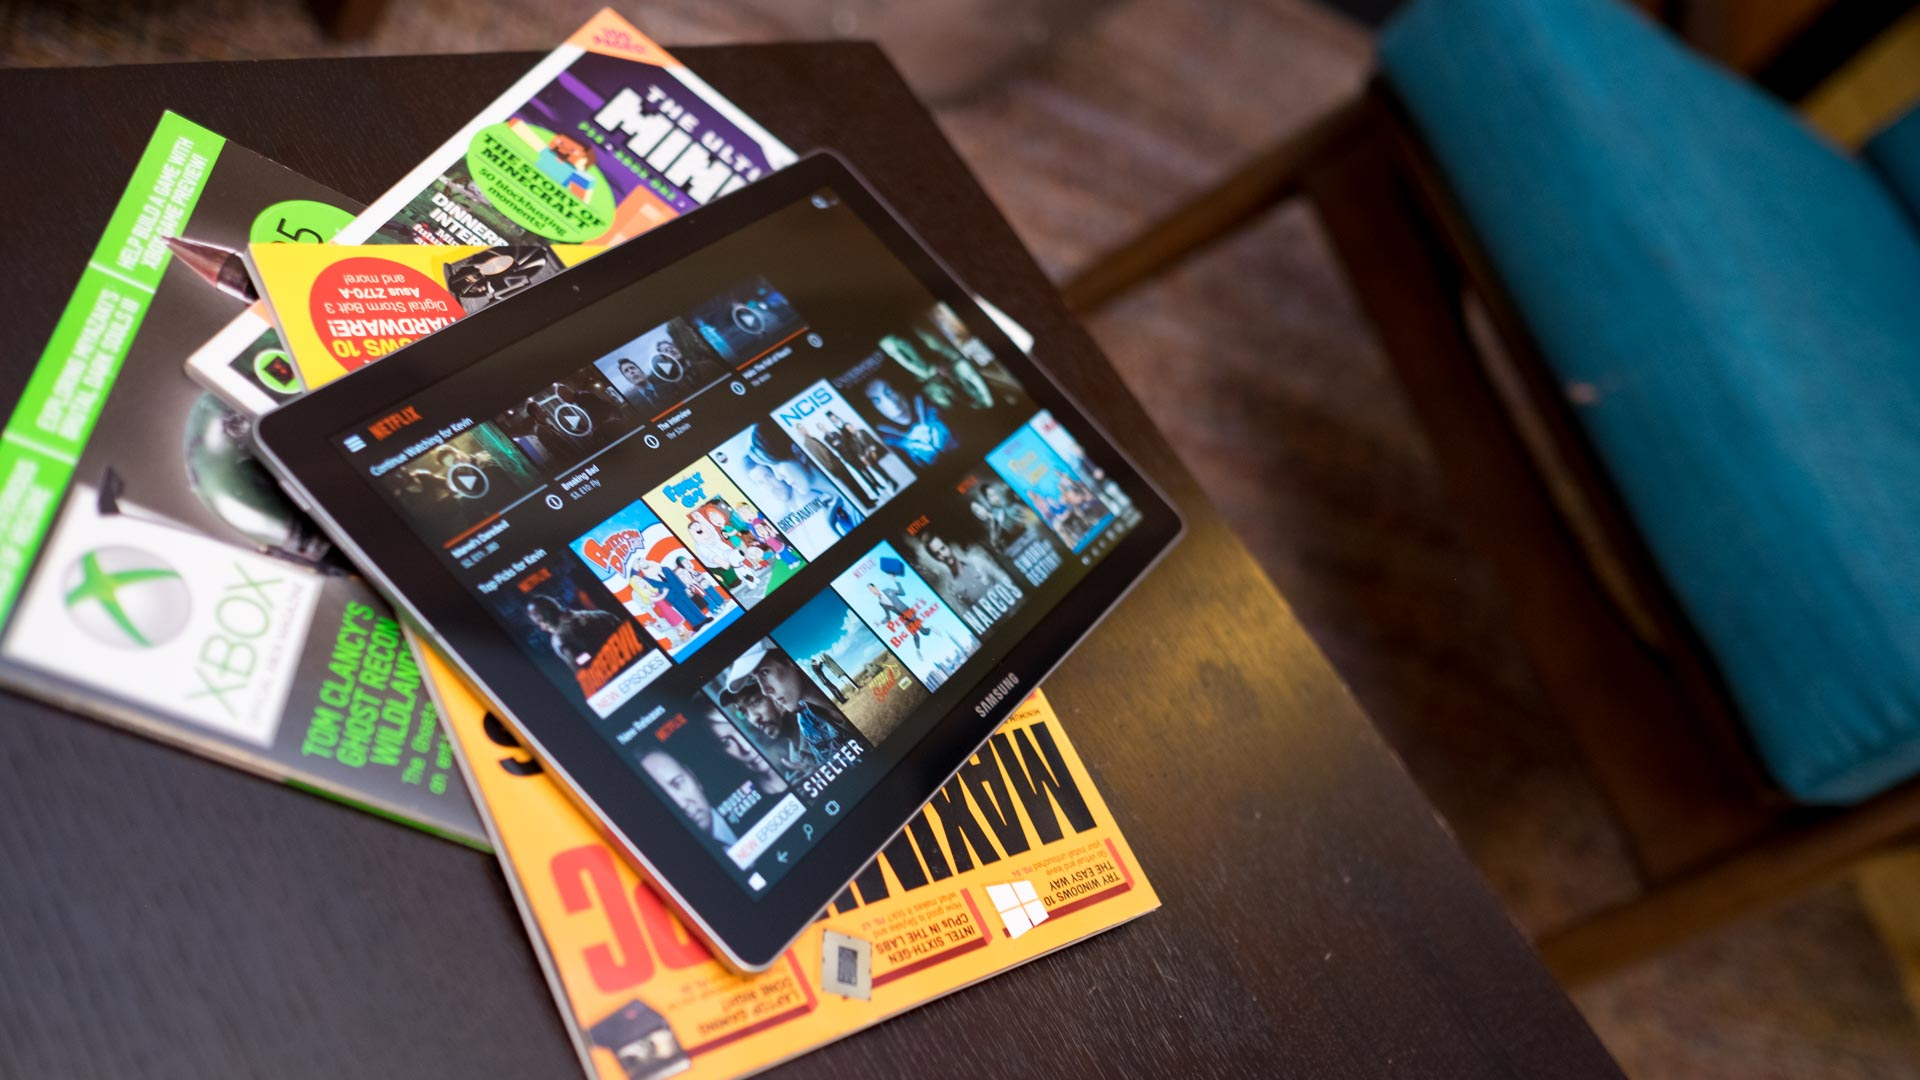 Best Windows tablets 2019